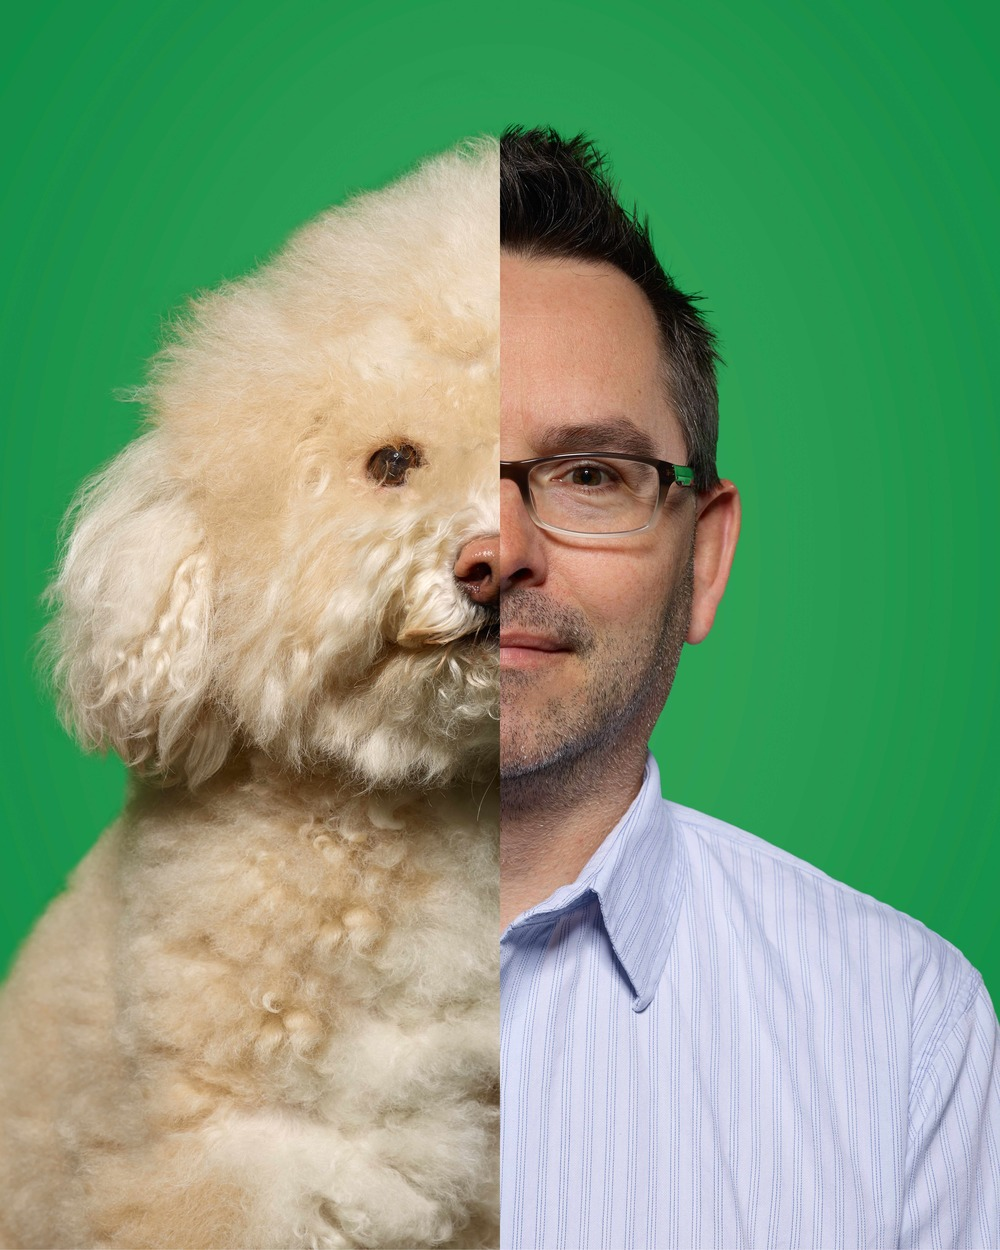 Chris Sheridan: Senior Editor As Senior Editor at Bic, Chris can cut anything from a comedic music videos to a more poignant spot. But no matter what it is, his goal is always the same — take bits and pieces of a story and weave them together for maximum impact and emotion. Shaggy is a Bichon Poodle with a different hairstyle every month. Both are massive Jayhawk fans.